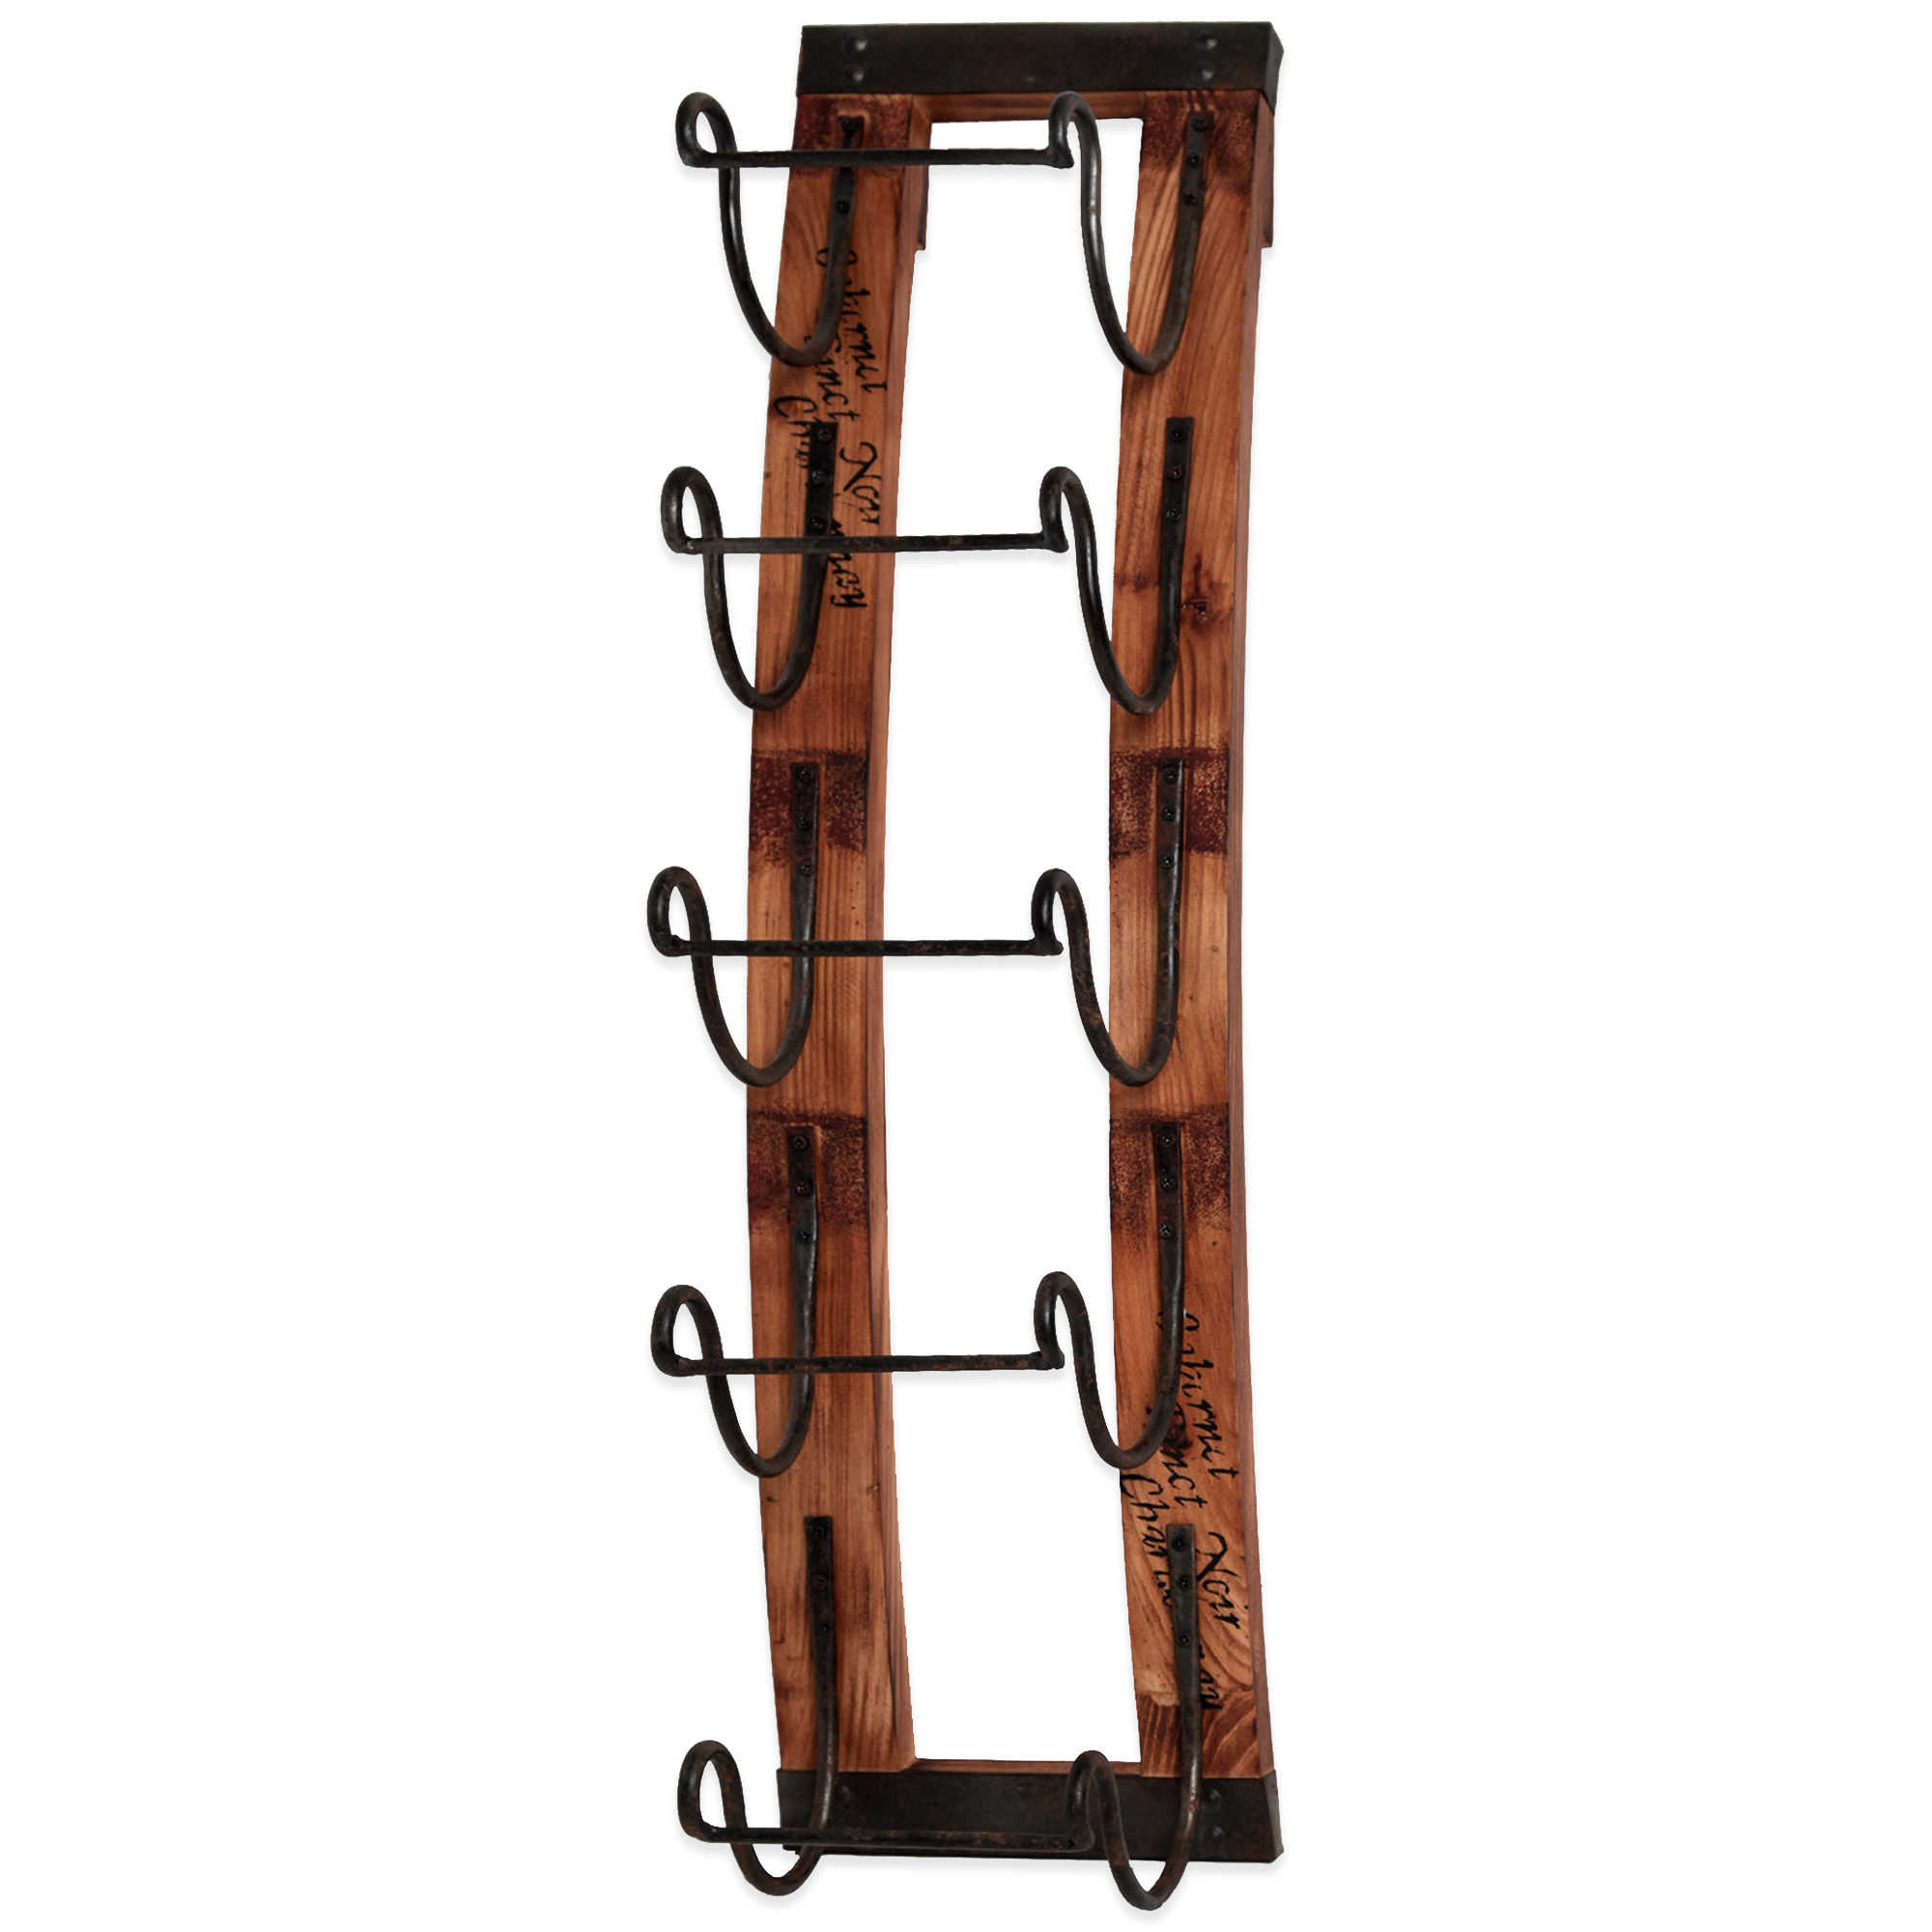 Uncategorized Tall Thin Wine Rack wine racks storage bars cabinets and more bed bath beyond image of 5 bottle hanging rack